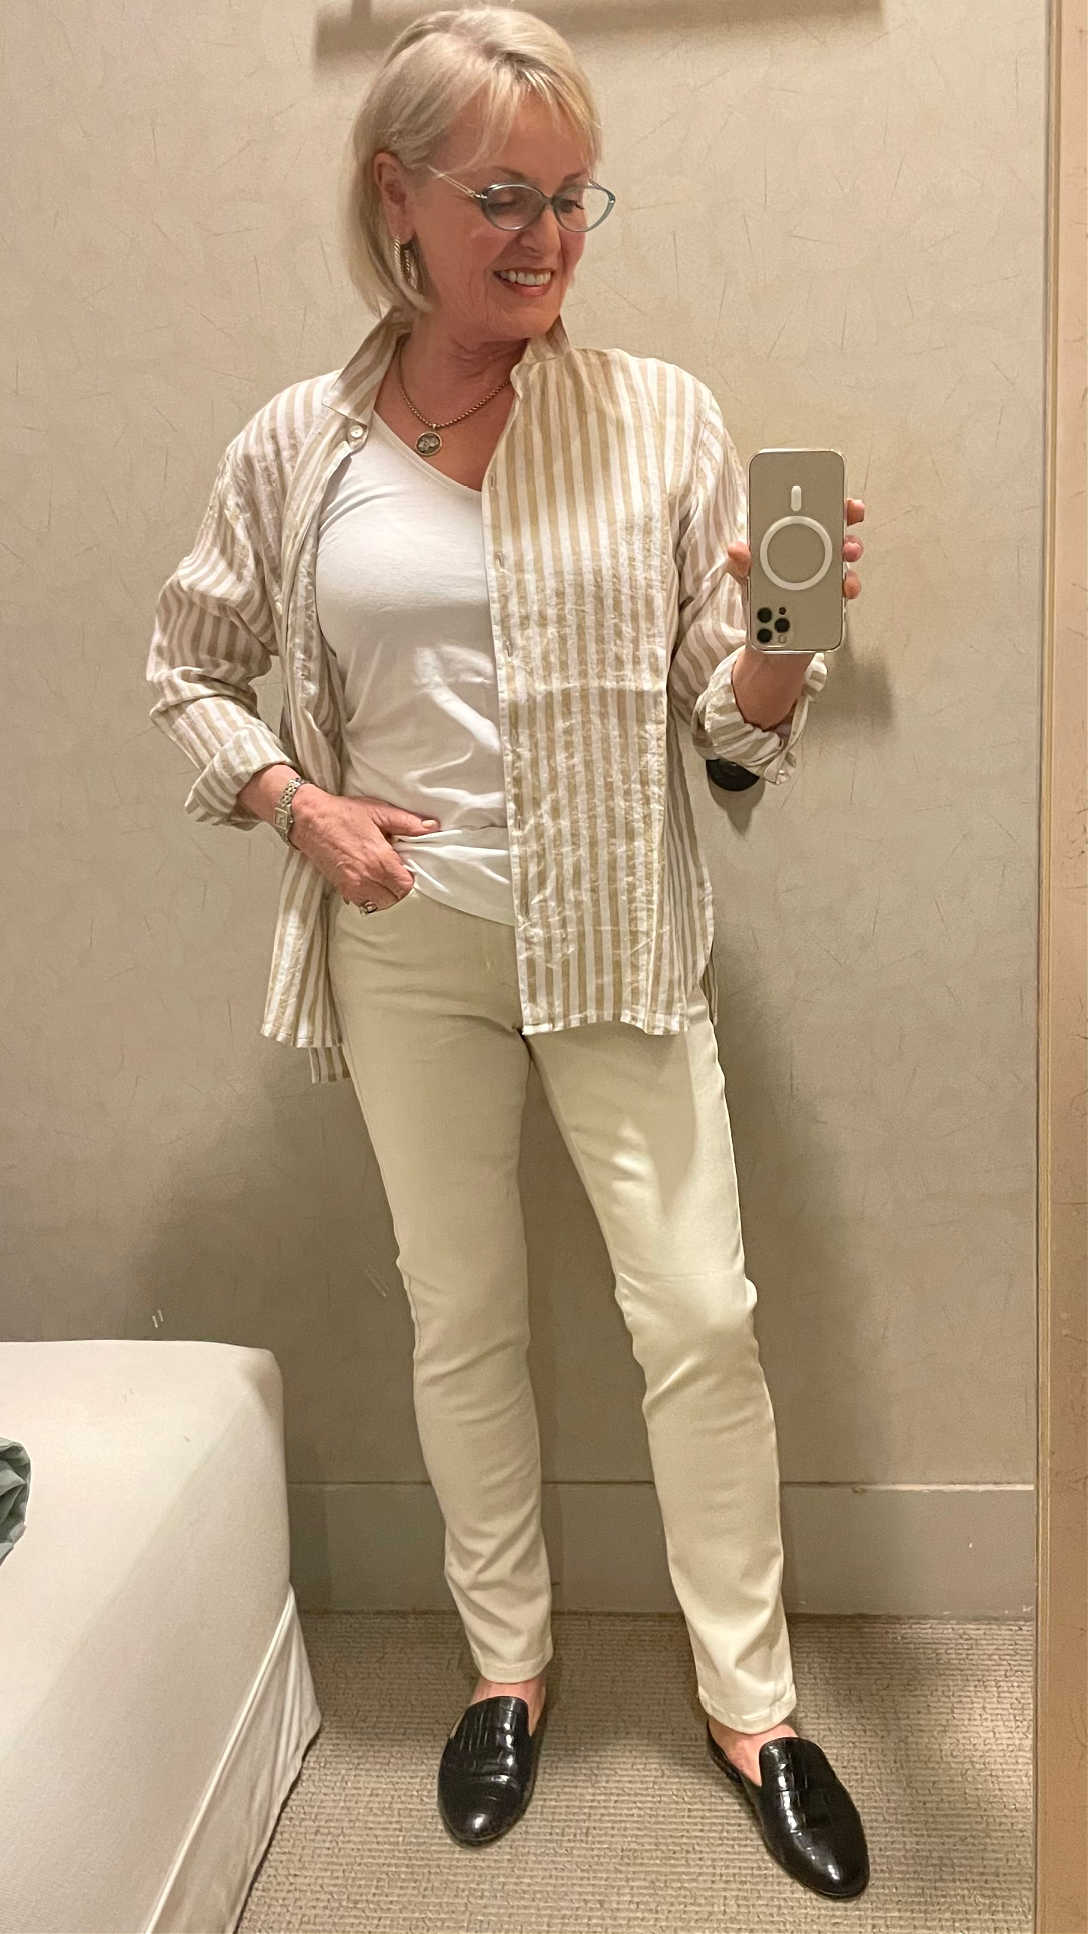 woman modeling striped shirt and jeans in dressing room selfie